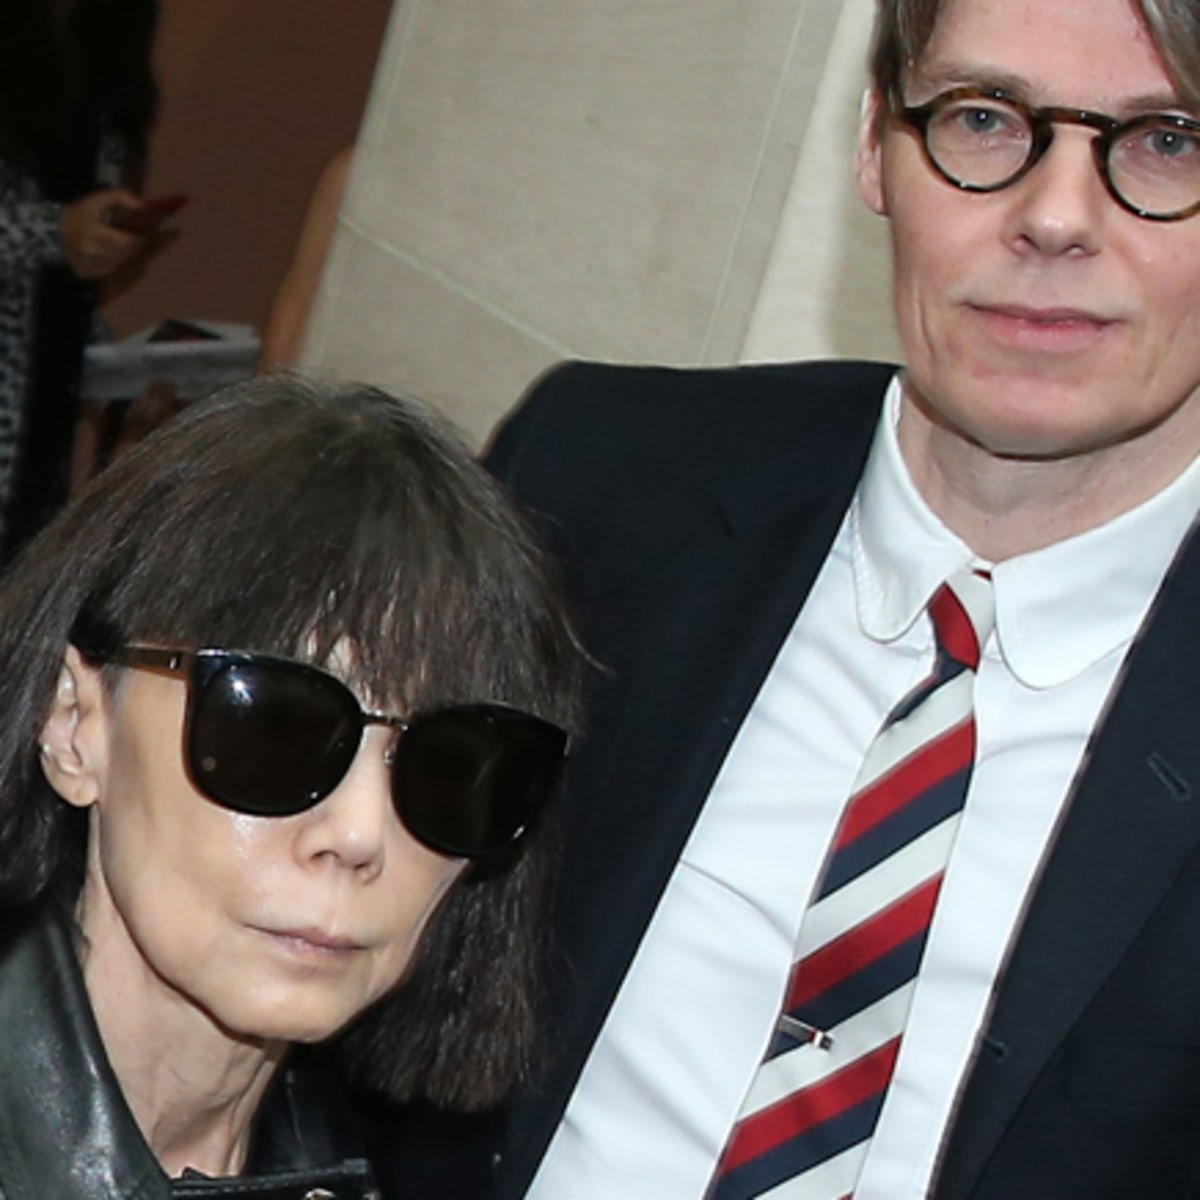 It Took Andrew Bolton 13 Years To Convince Rei Kawakubo To Do A Met Exhibition Fashionista